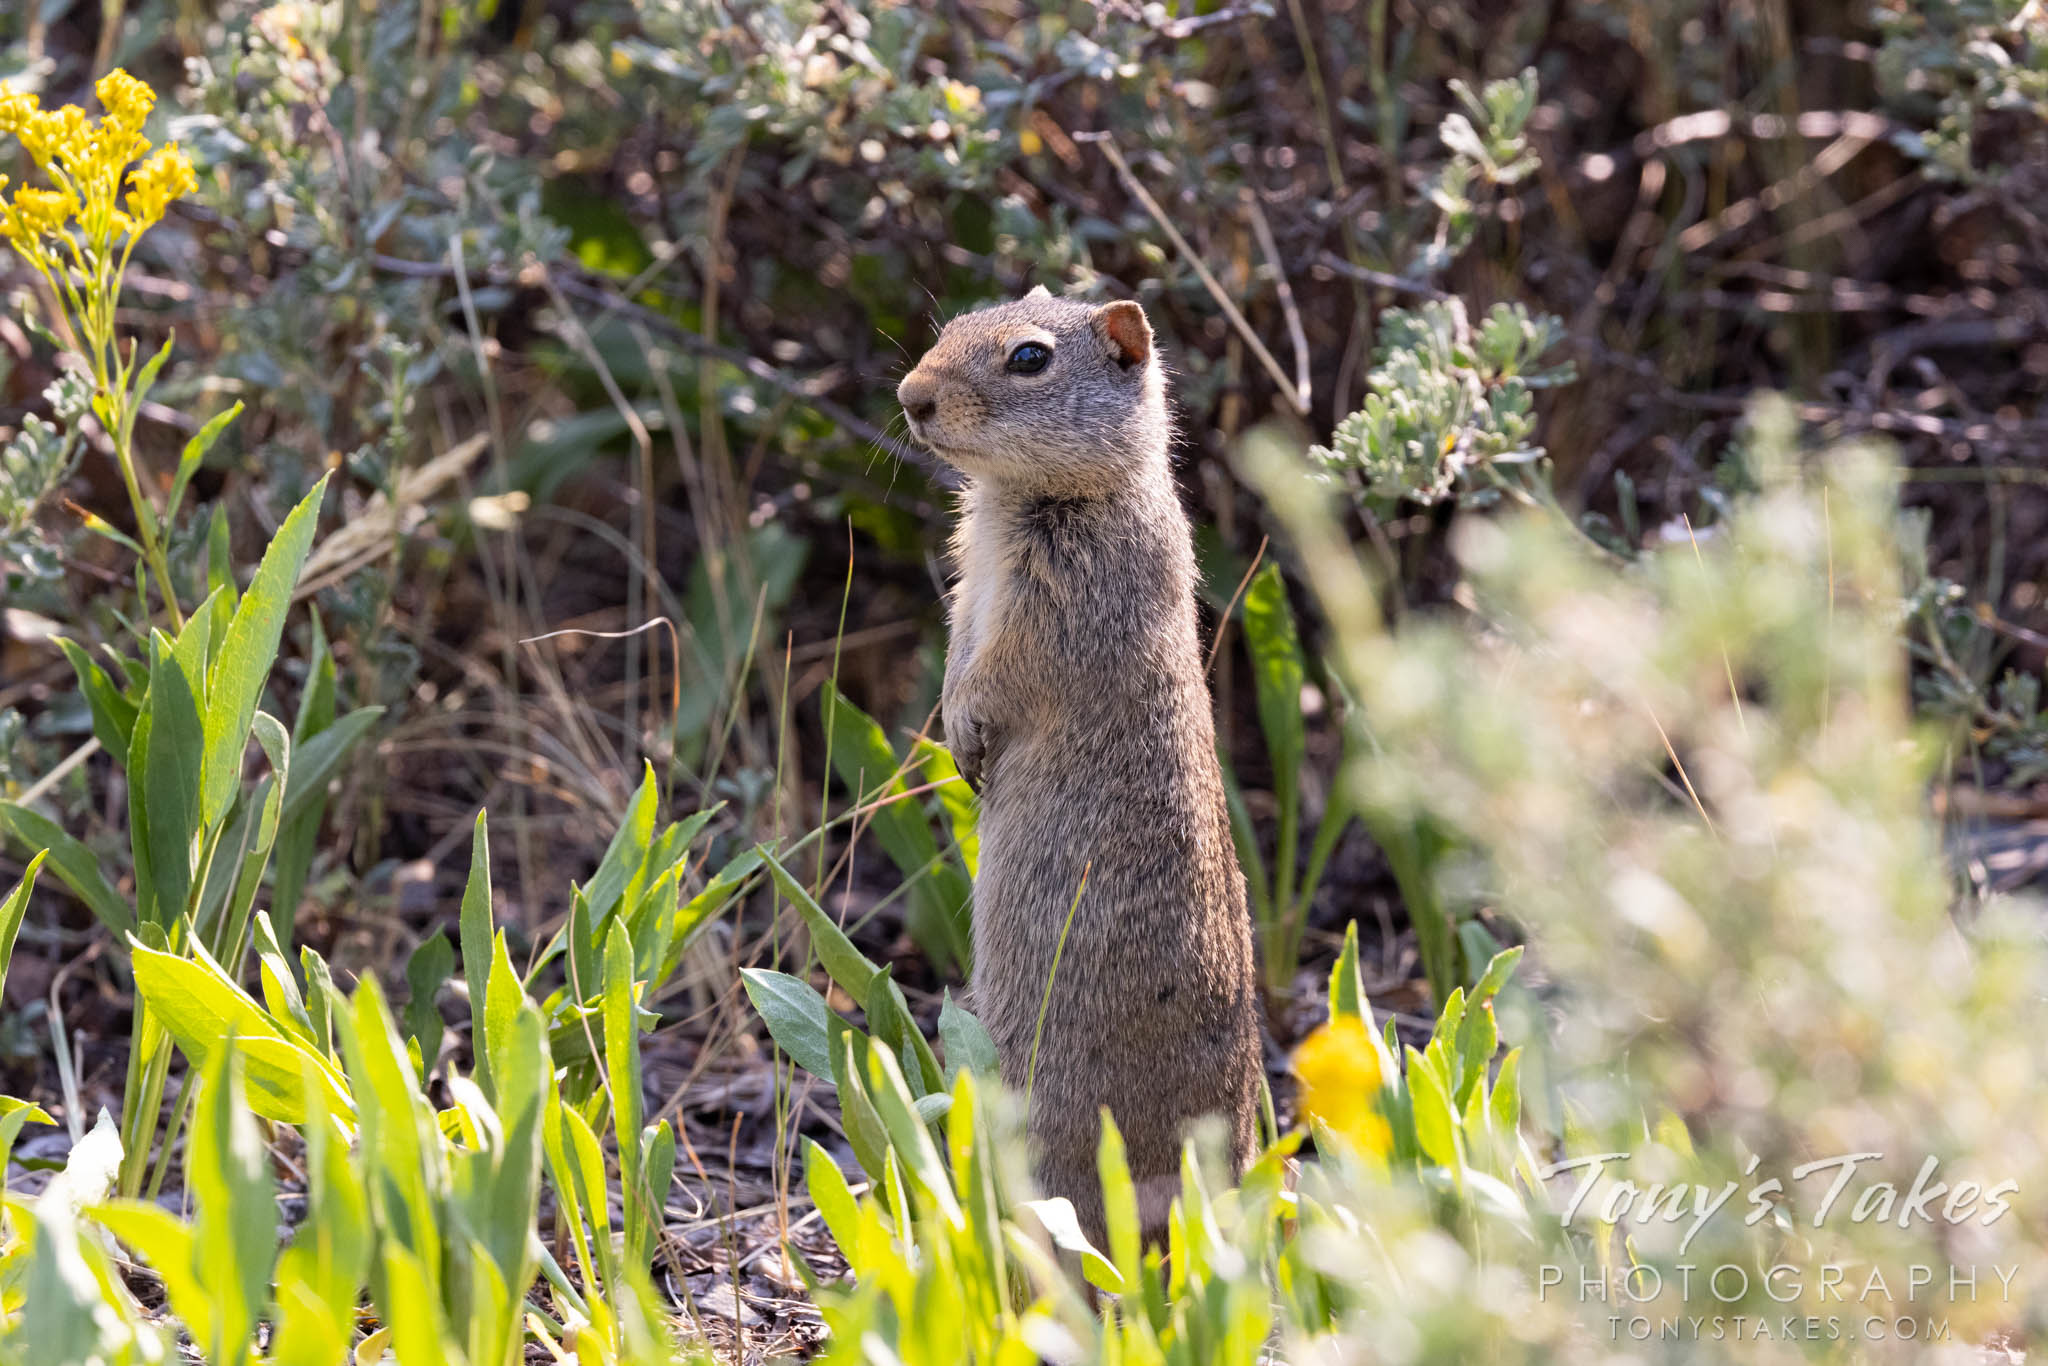 Squirrel pops tall, keeps watch